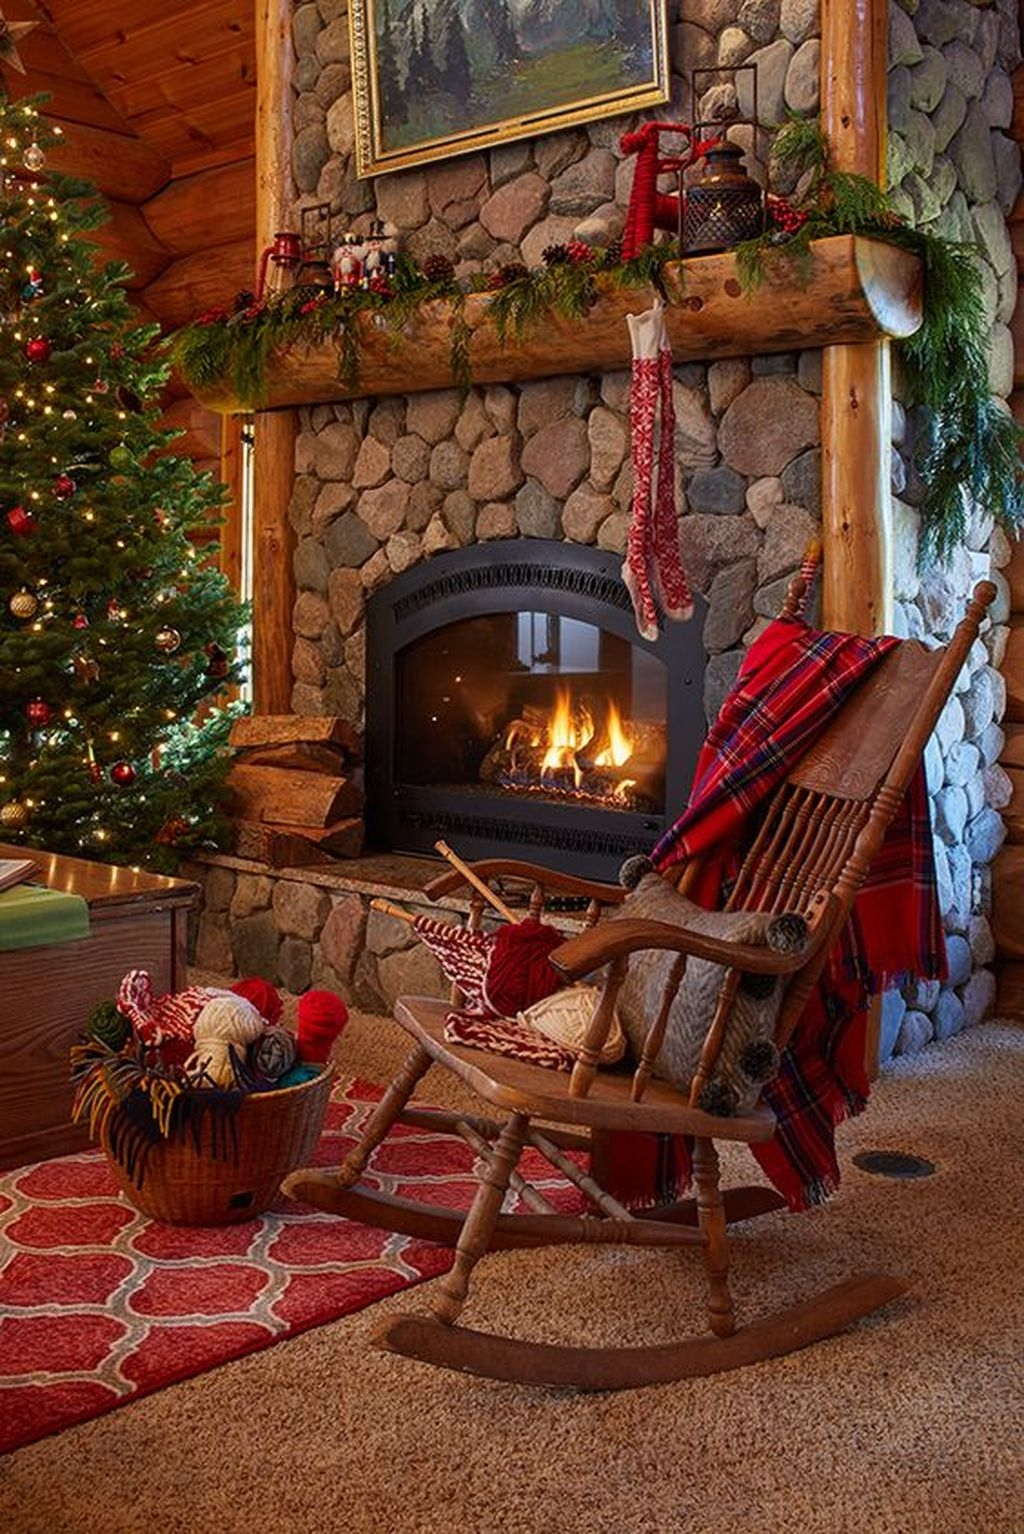 The Best Christmas Fireplace Decoration For Any Home Model 06